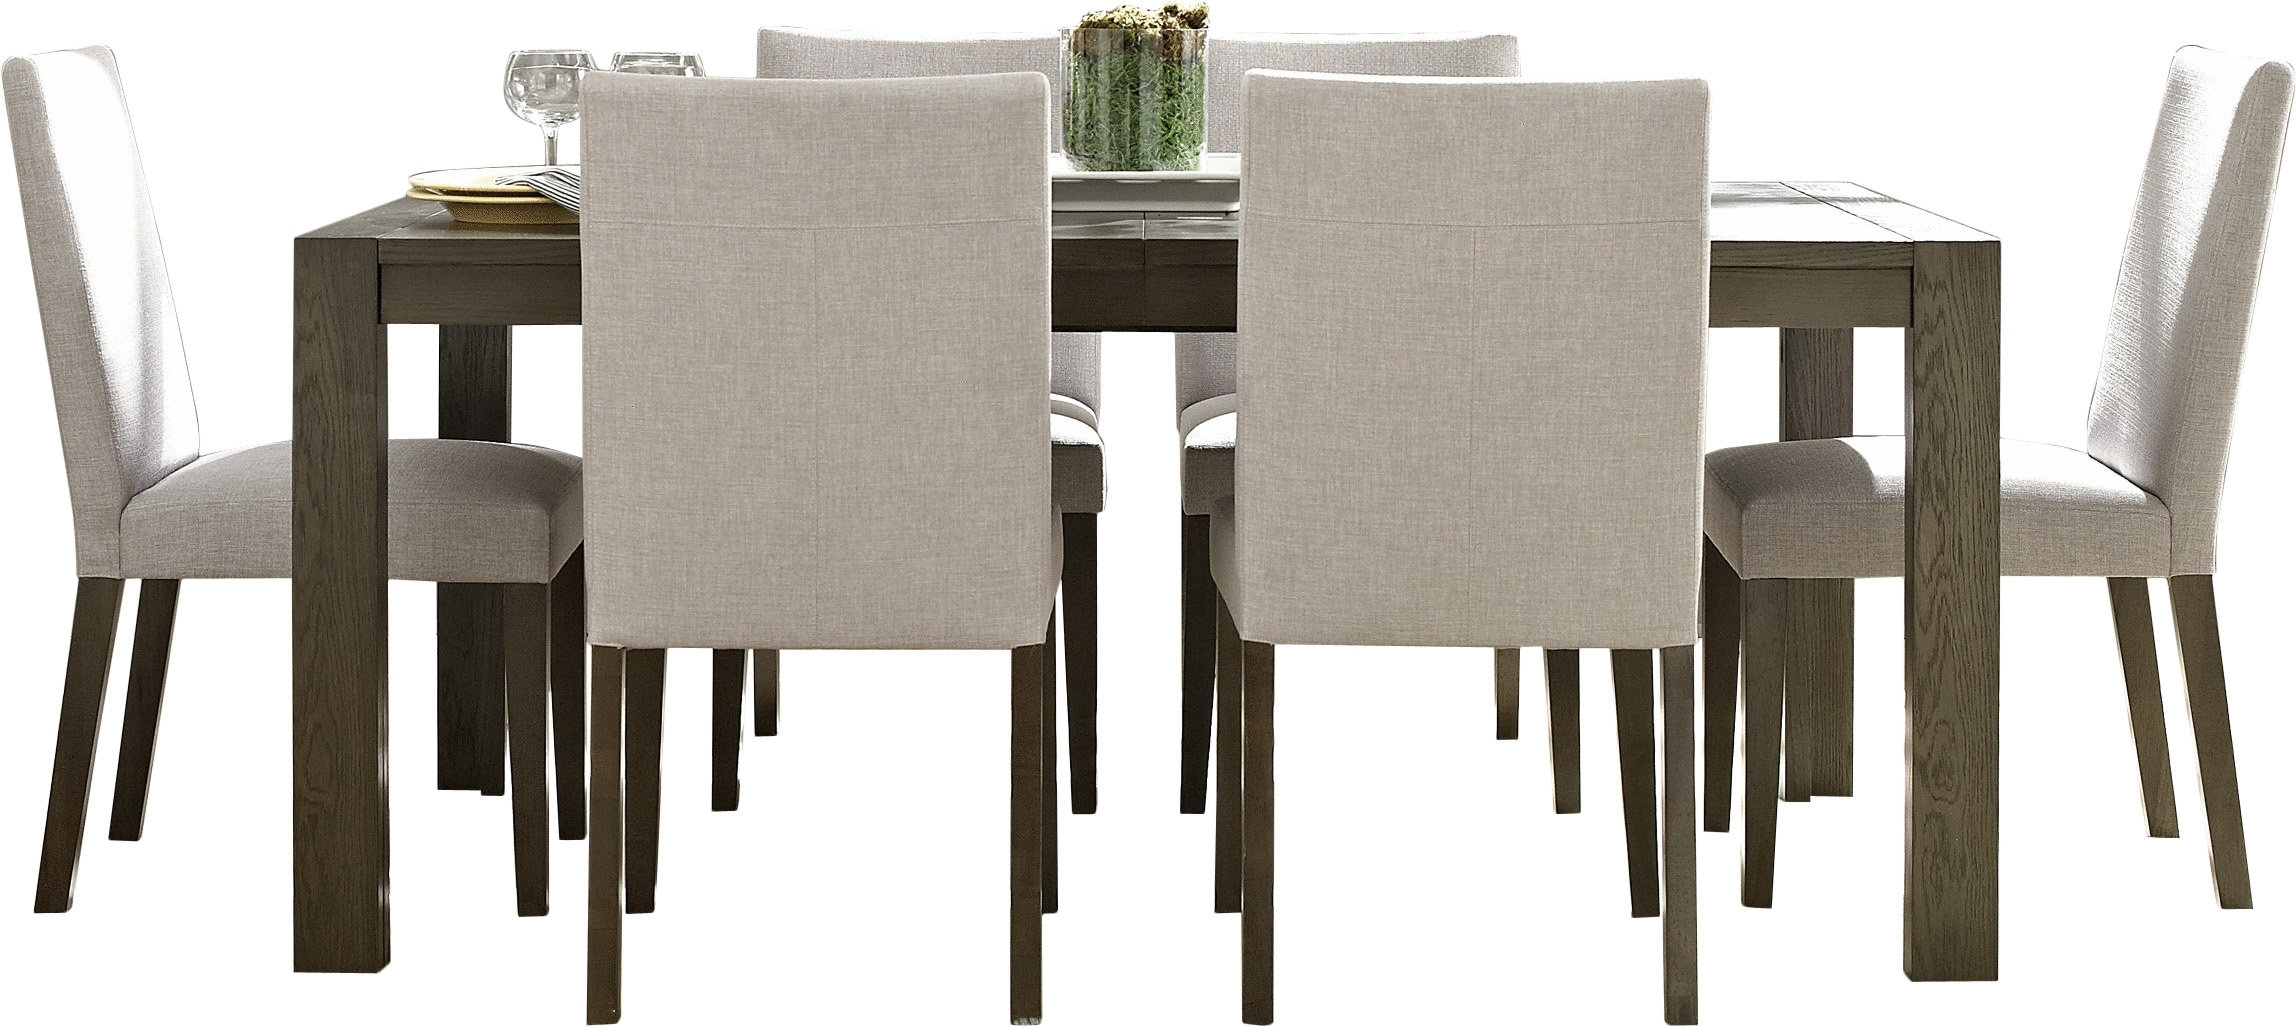 Logan 7 Piece Dining Sets In Most Current Wade Logan Girard 7 Piece Dining Set & Reviews (View 8 of 25)